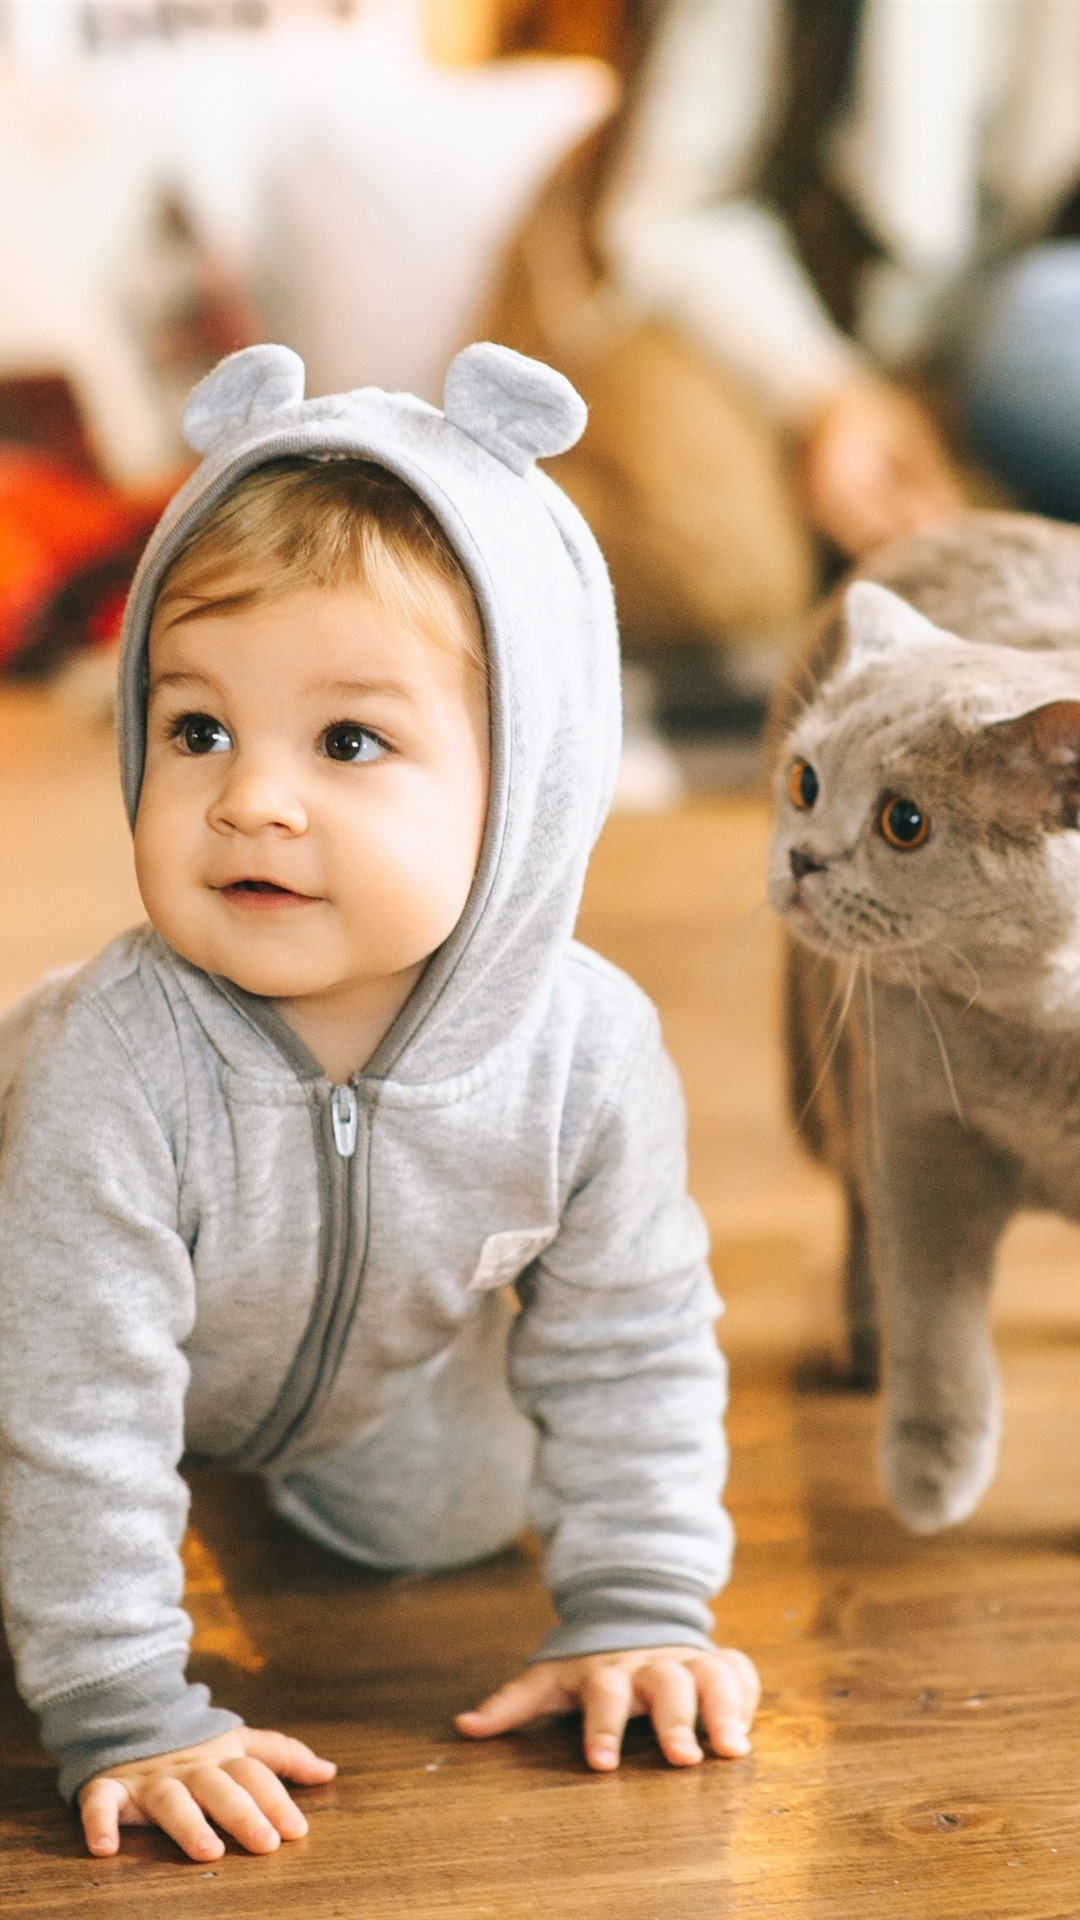 Wallpaper Cute Baby And Cat Floor 2880x1800 Hd Picture Image